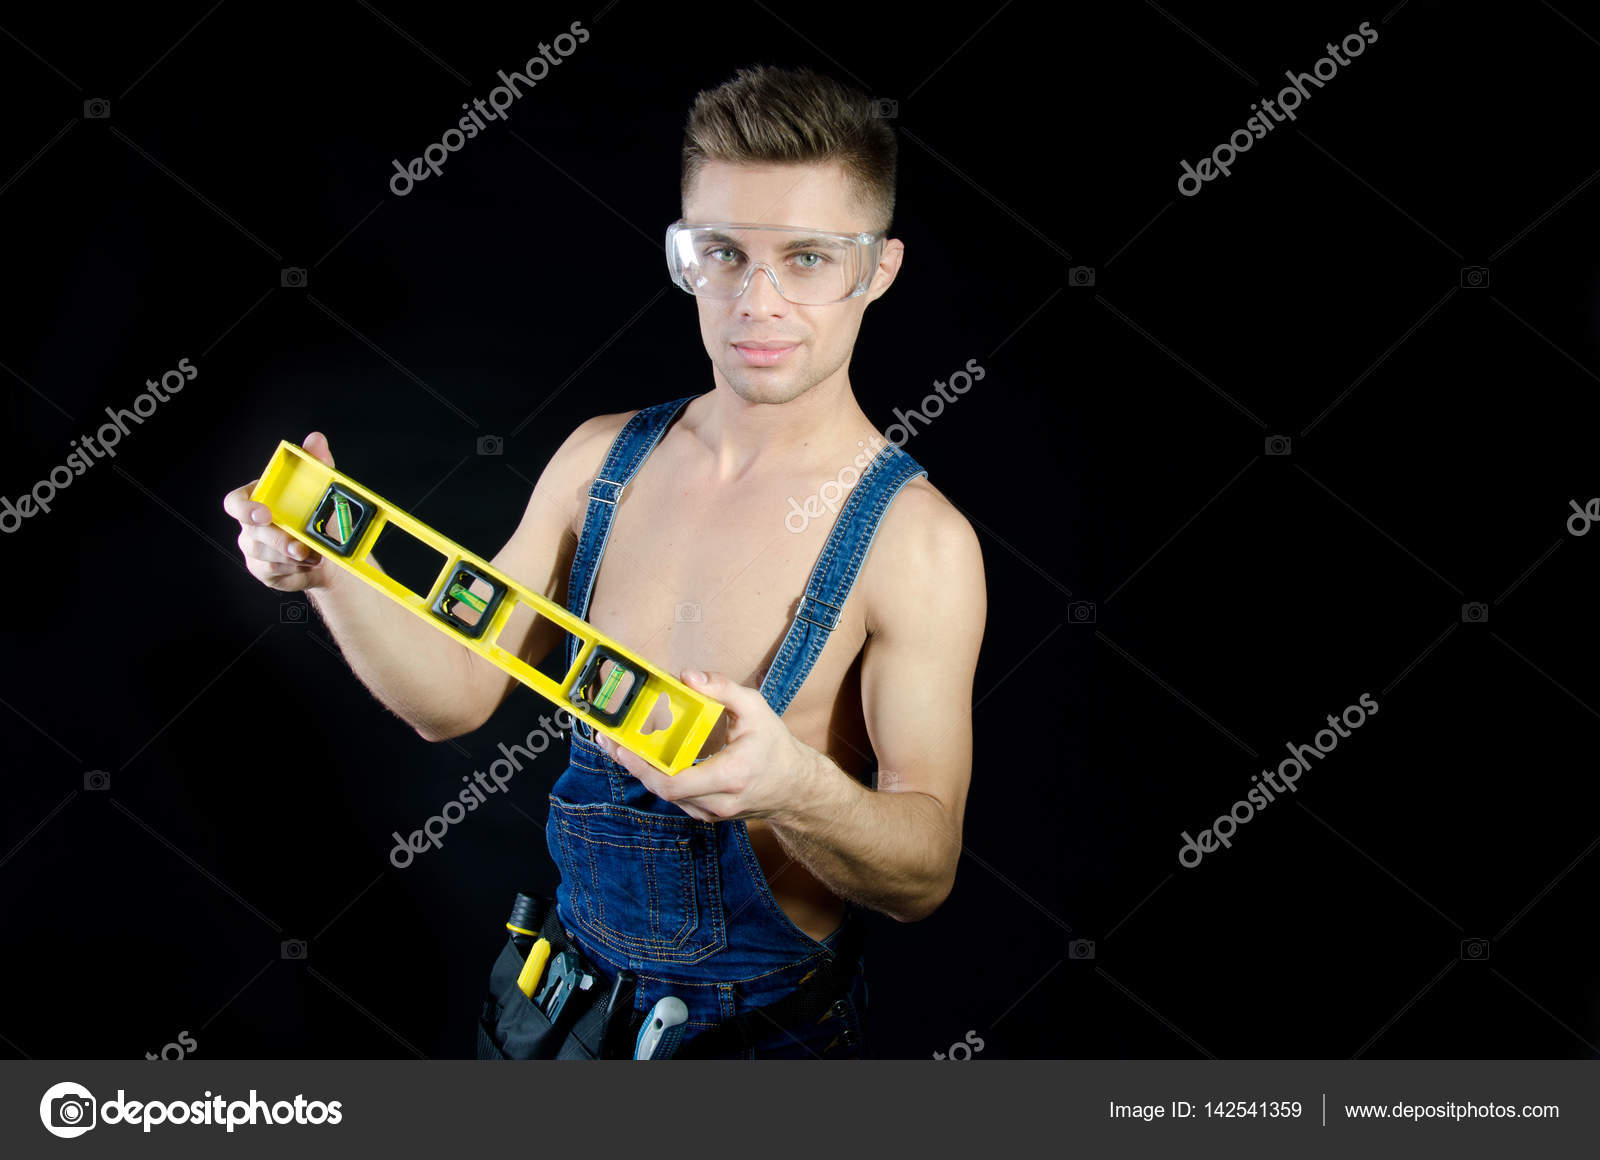 Handsome young guy. Portrait. Handyman shirtless. Smile and joy. Black  background. — Photo by vladorlov 0a0ccea296